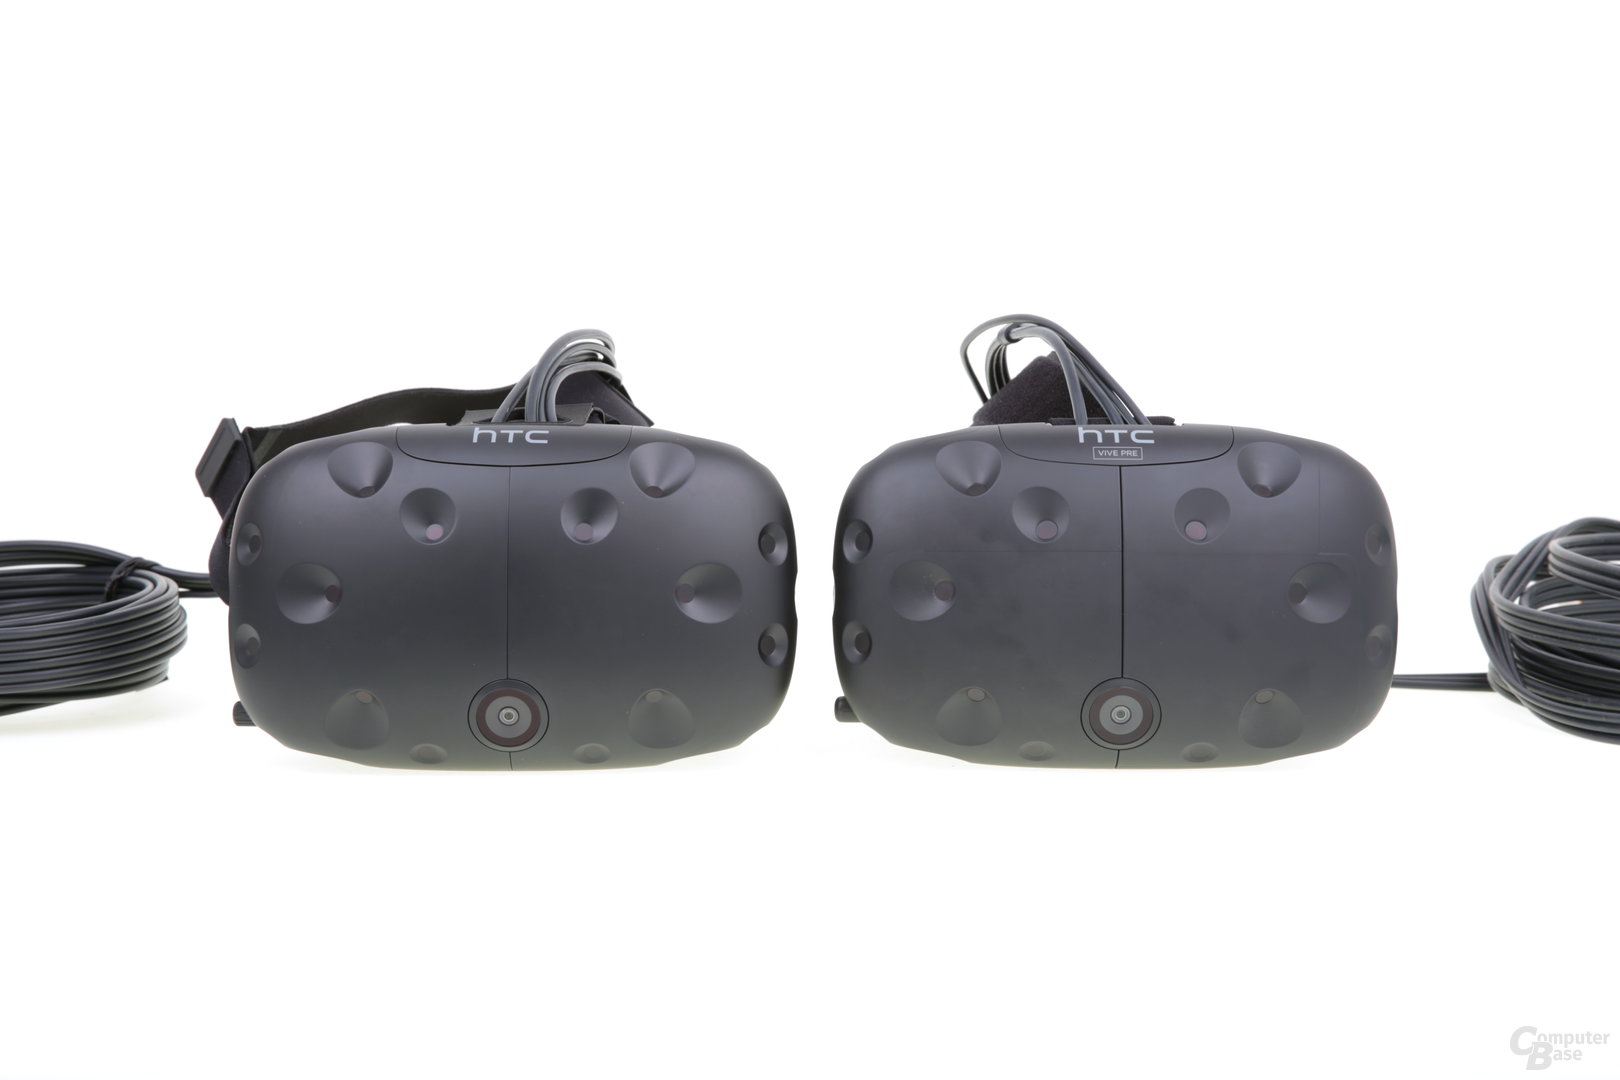 Links final, rechts HTC Vive PRE